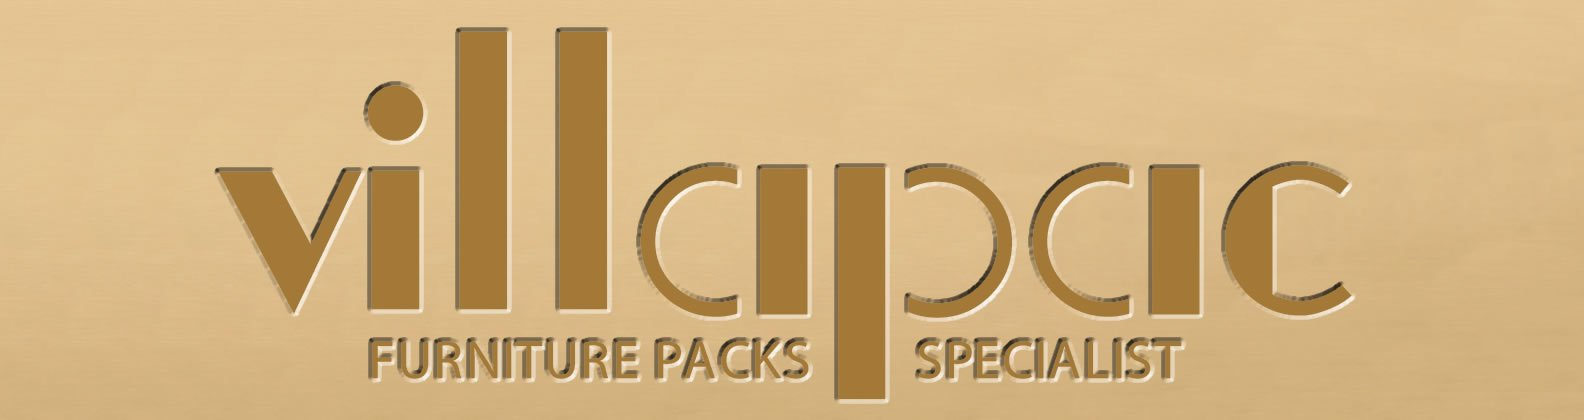 Villapac furniture packs specialist